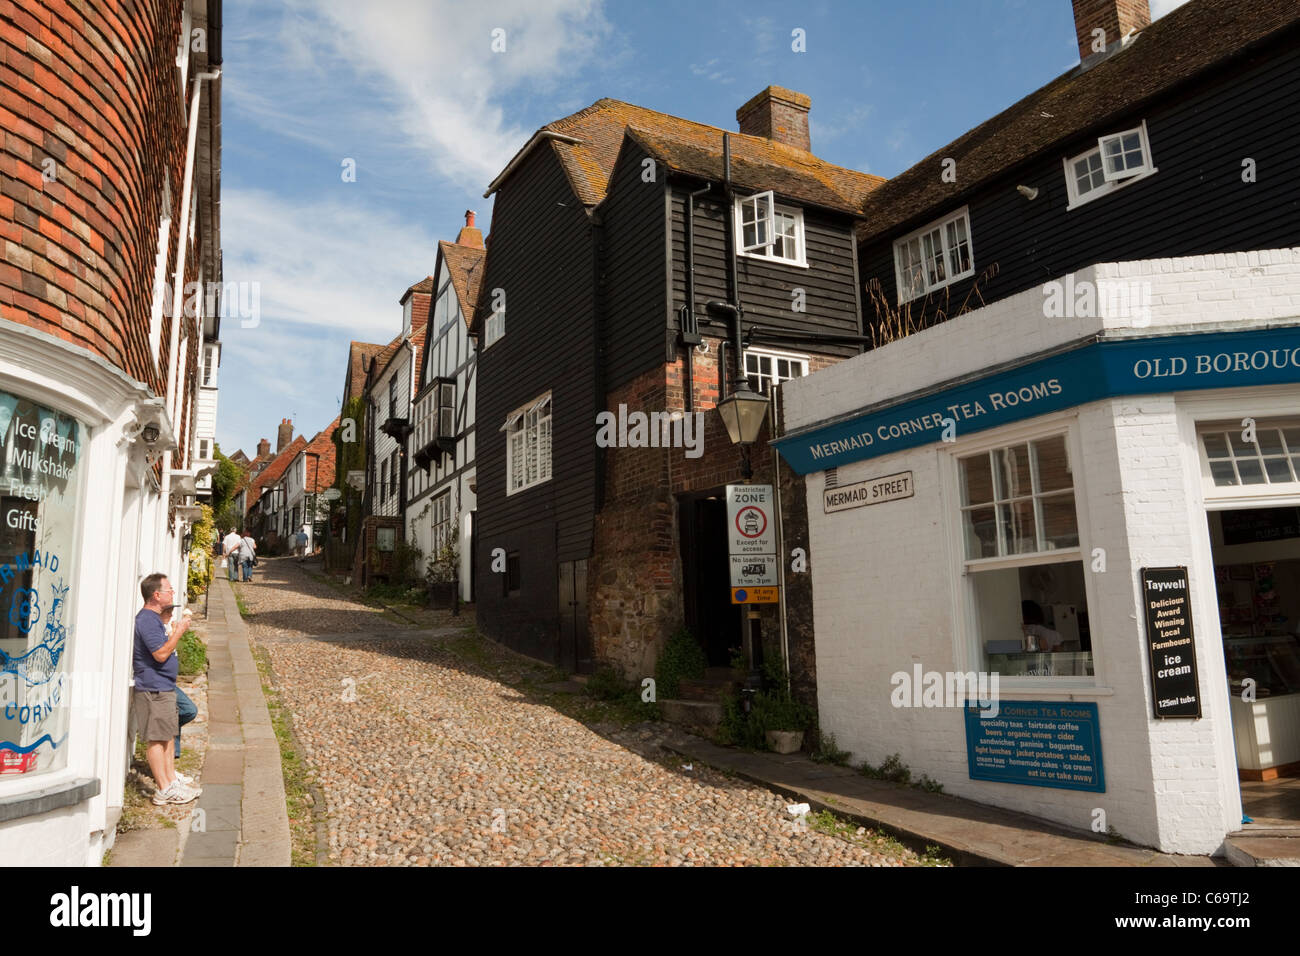 Mermaid Street, Rye, East Sussex, England, UK Photo Stock